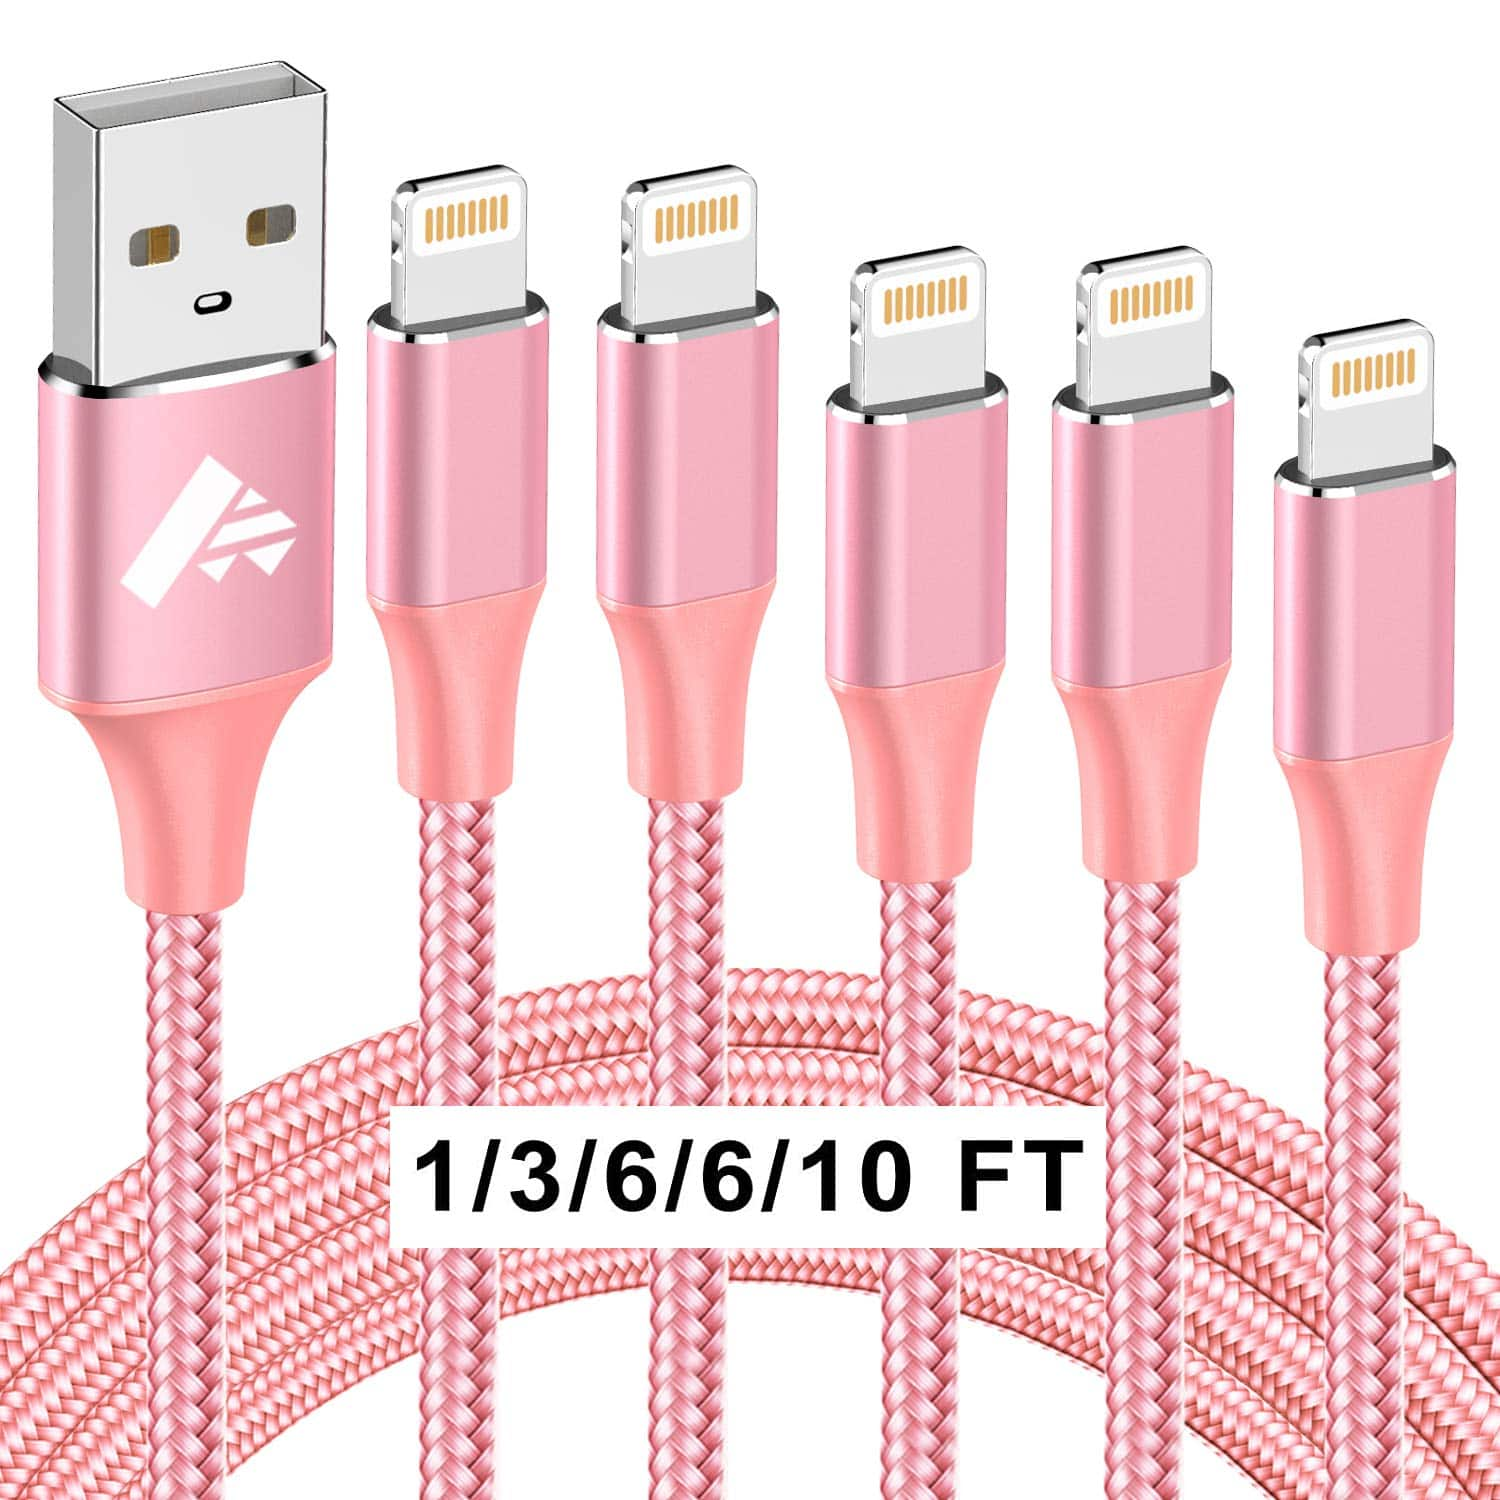 iPhone Charger Cable 5 Pack, MFi Certified YMMV $2.99